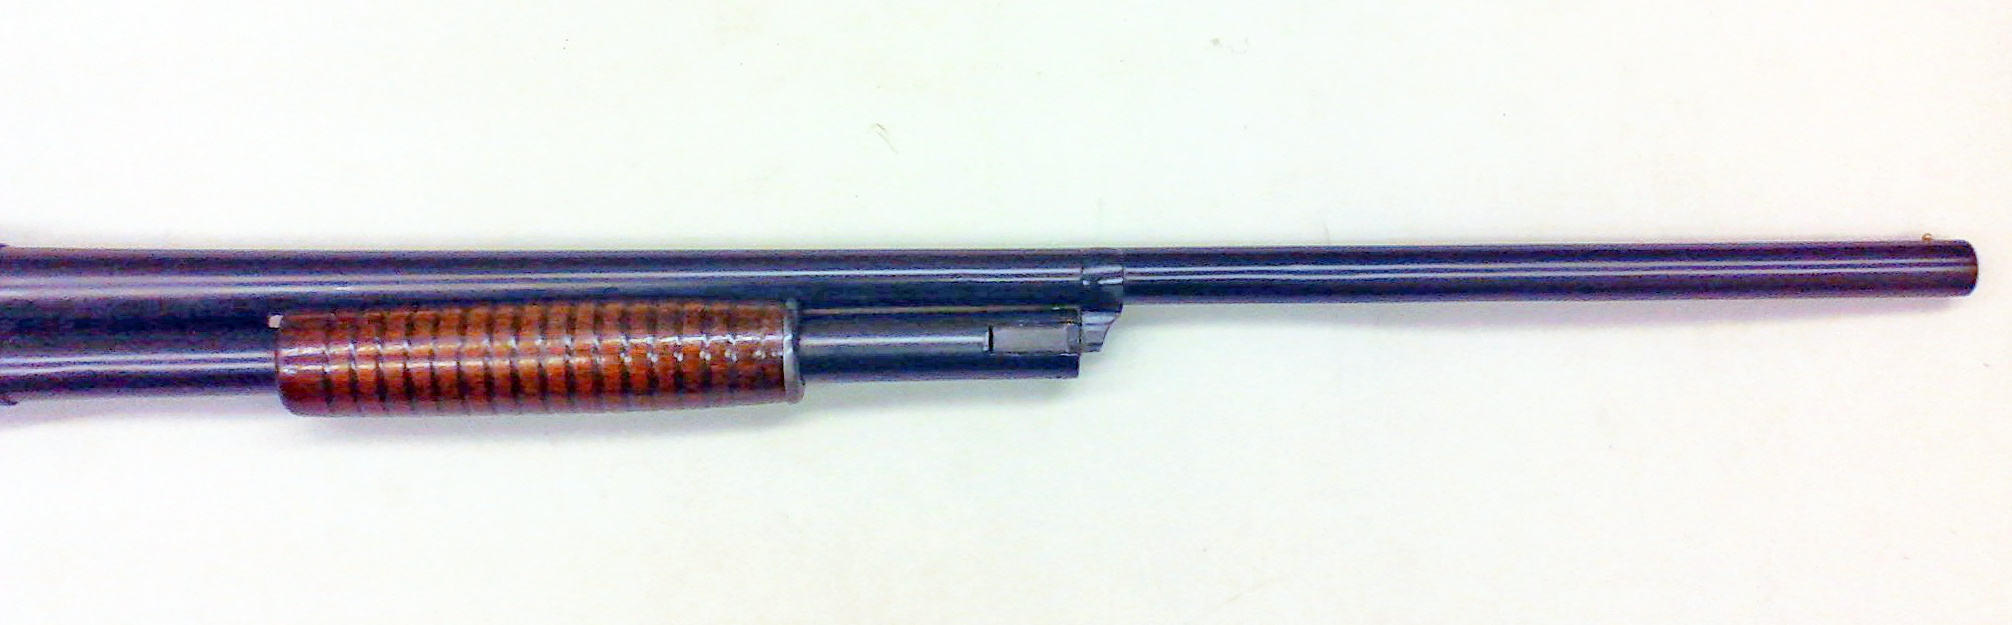 Remington model 11 barrel cerakoted with Socom blue.